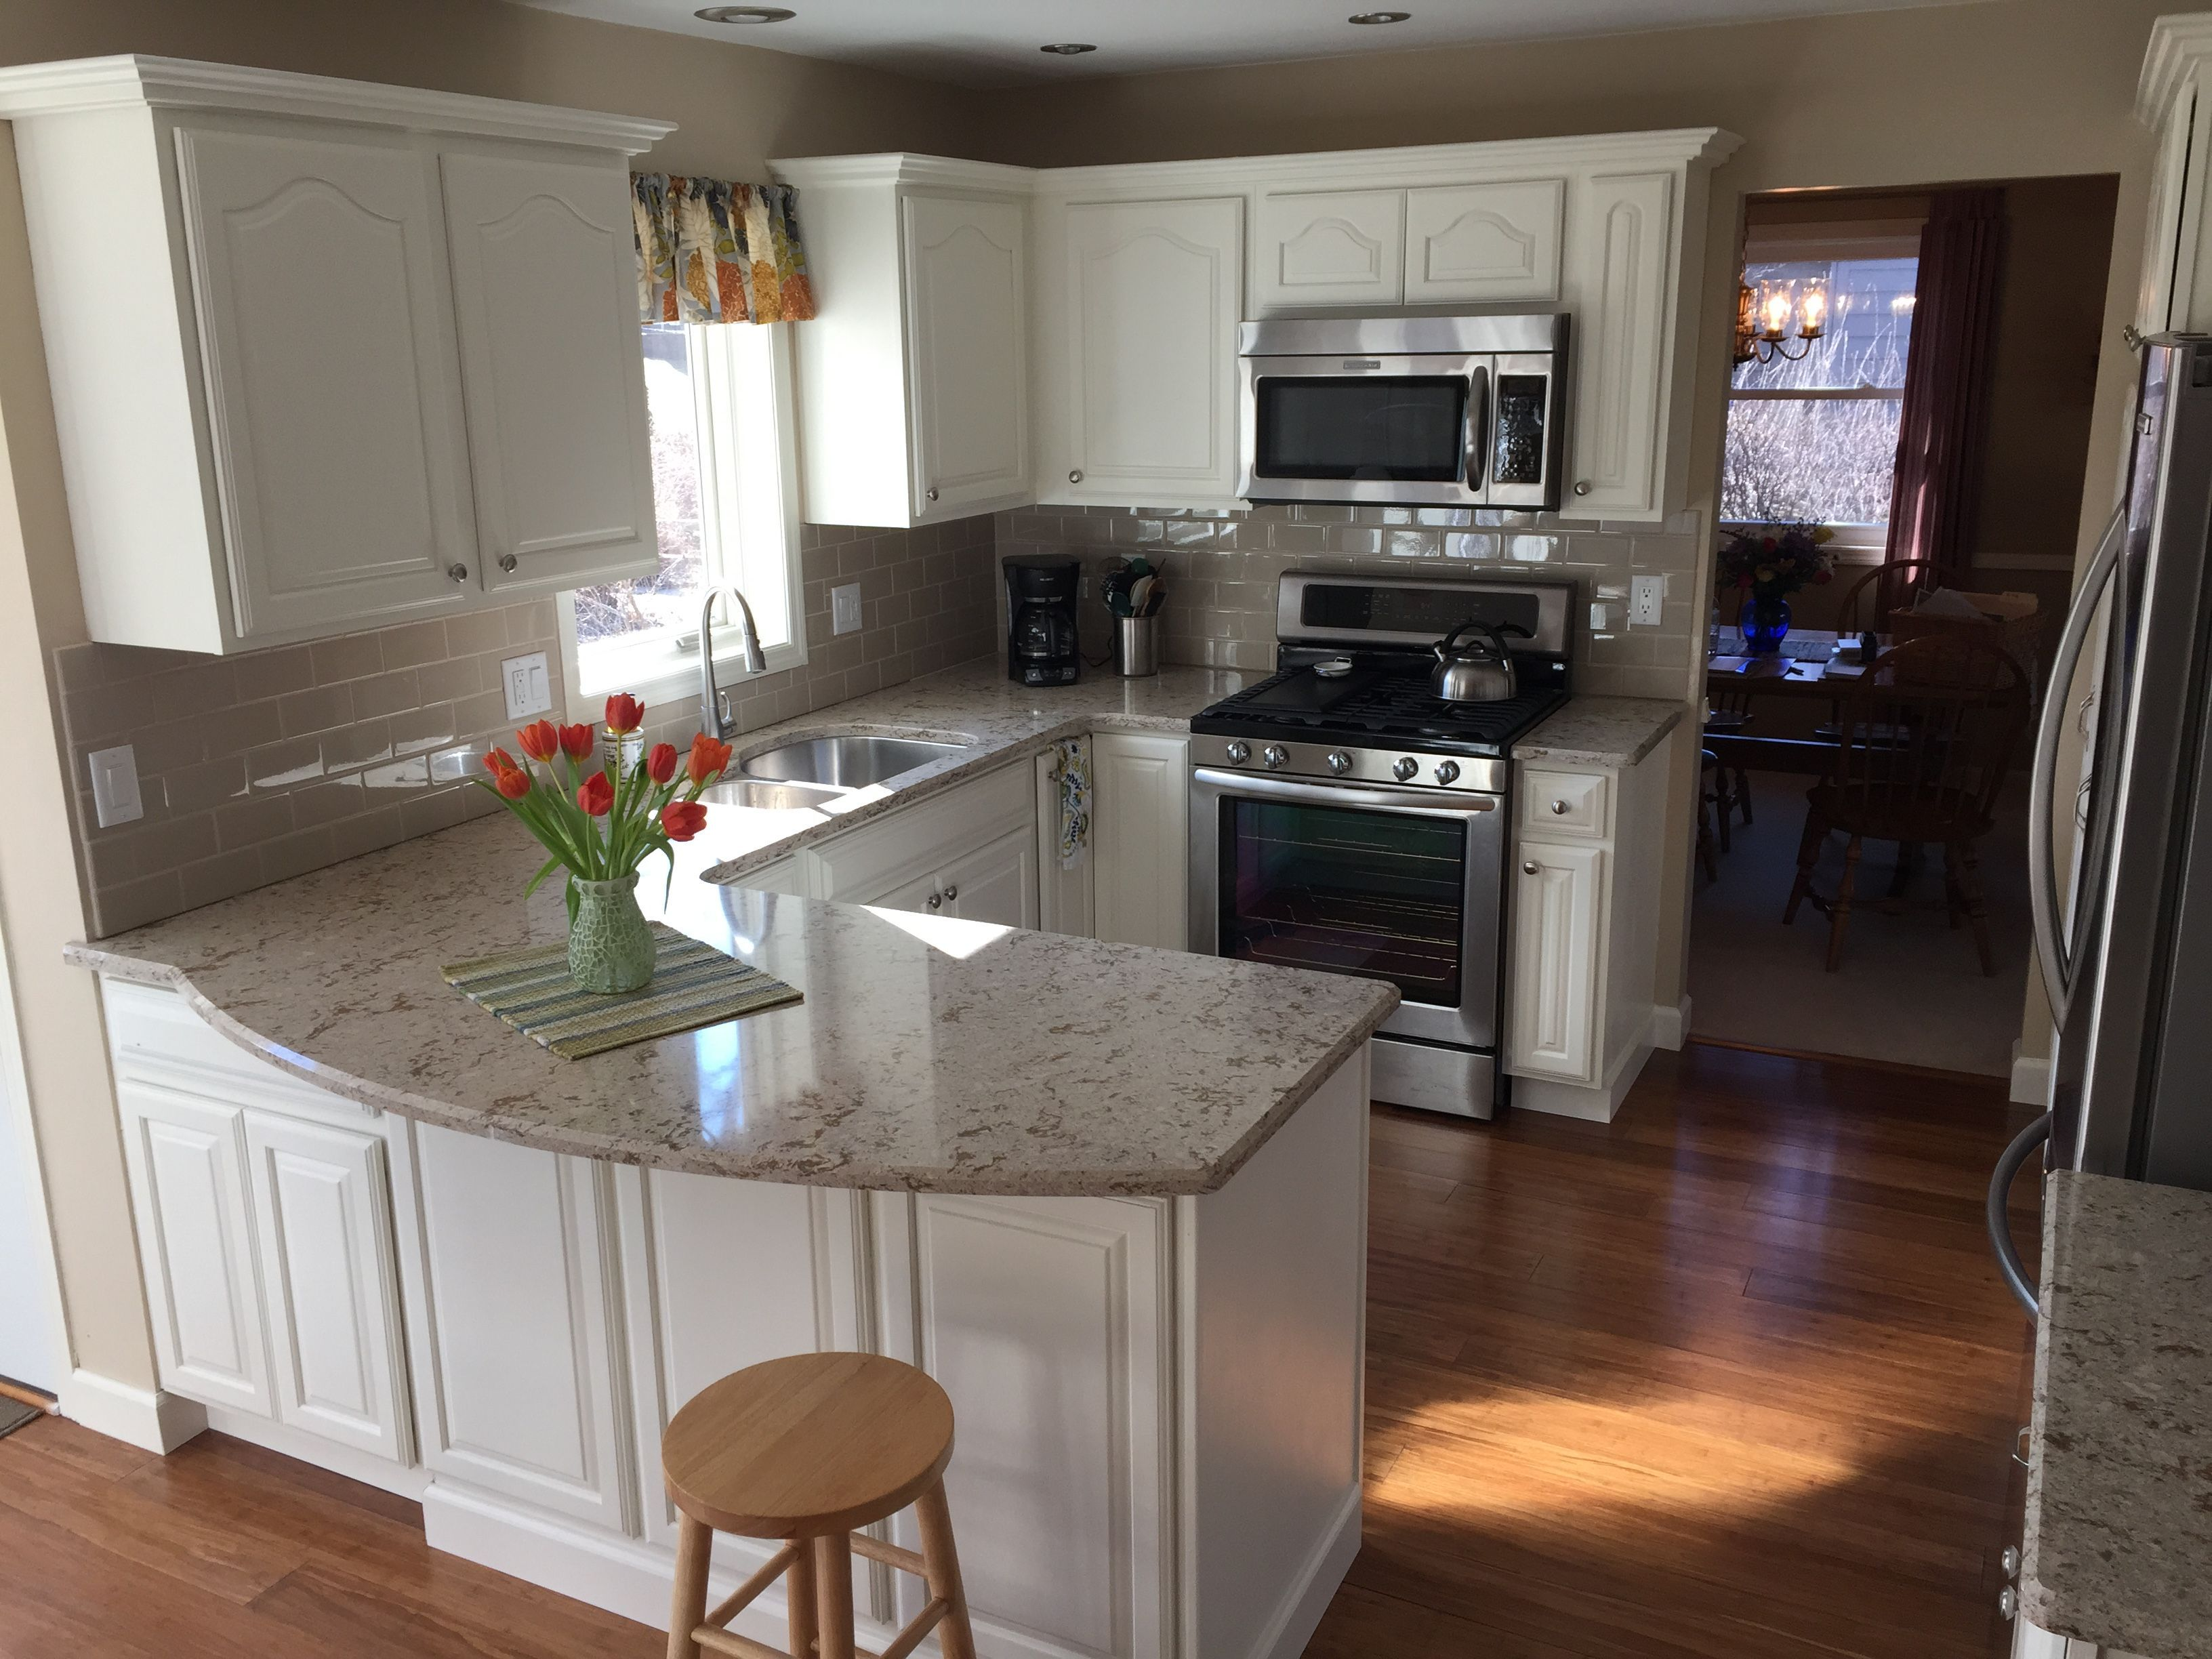 Cabinets Sherwin Williams Dover White Proclassic Acrylic Interior Enamel In Semigloss Countertops Kitchen Remodel Small Kitchen Remodel Plans Kitchen Layout